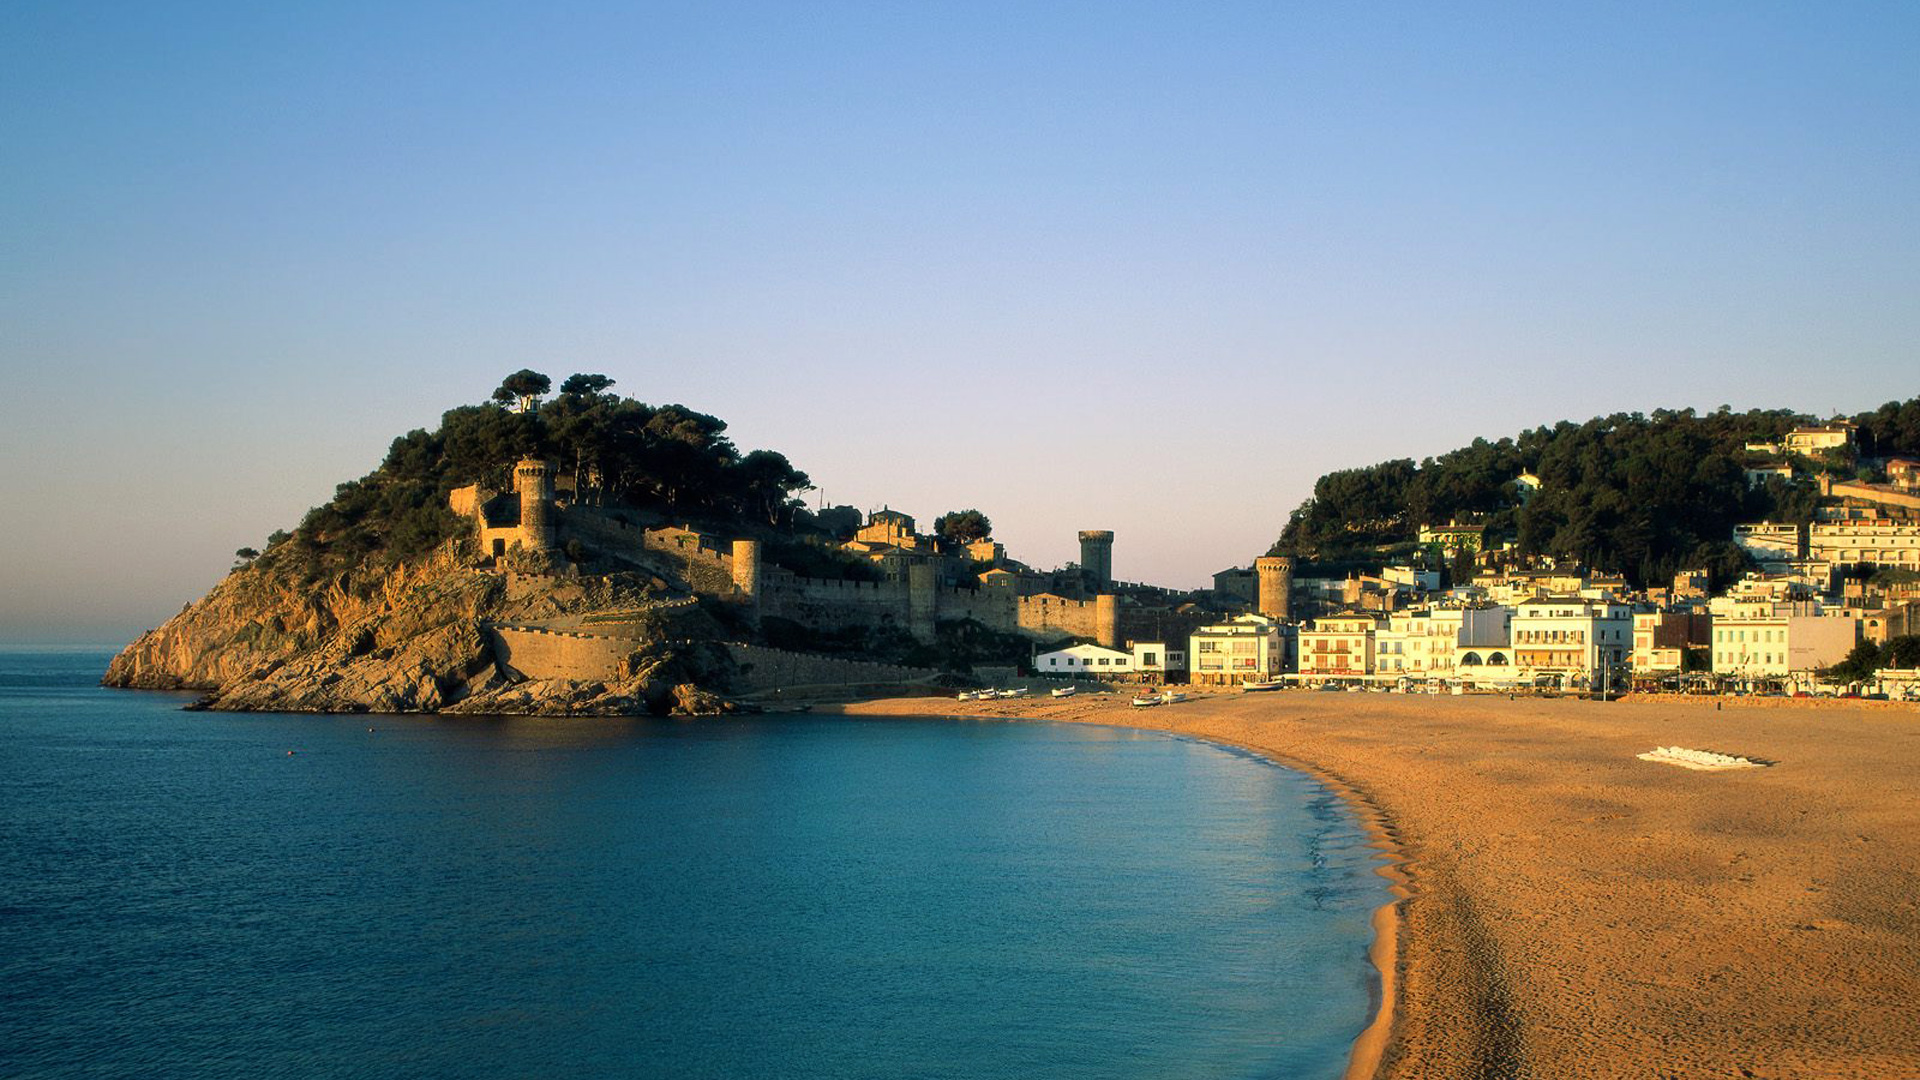 tossa-de-mar-spain-wallpaper-1920x1200.jpg